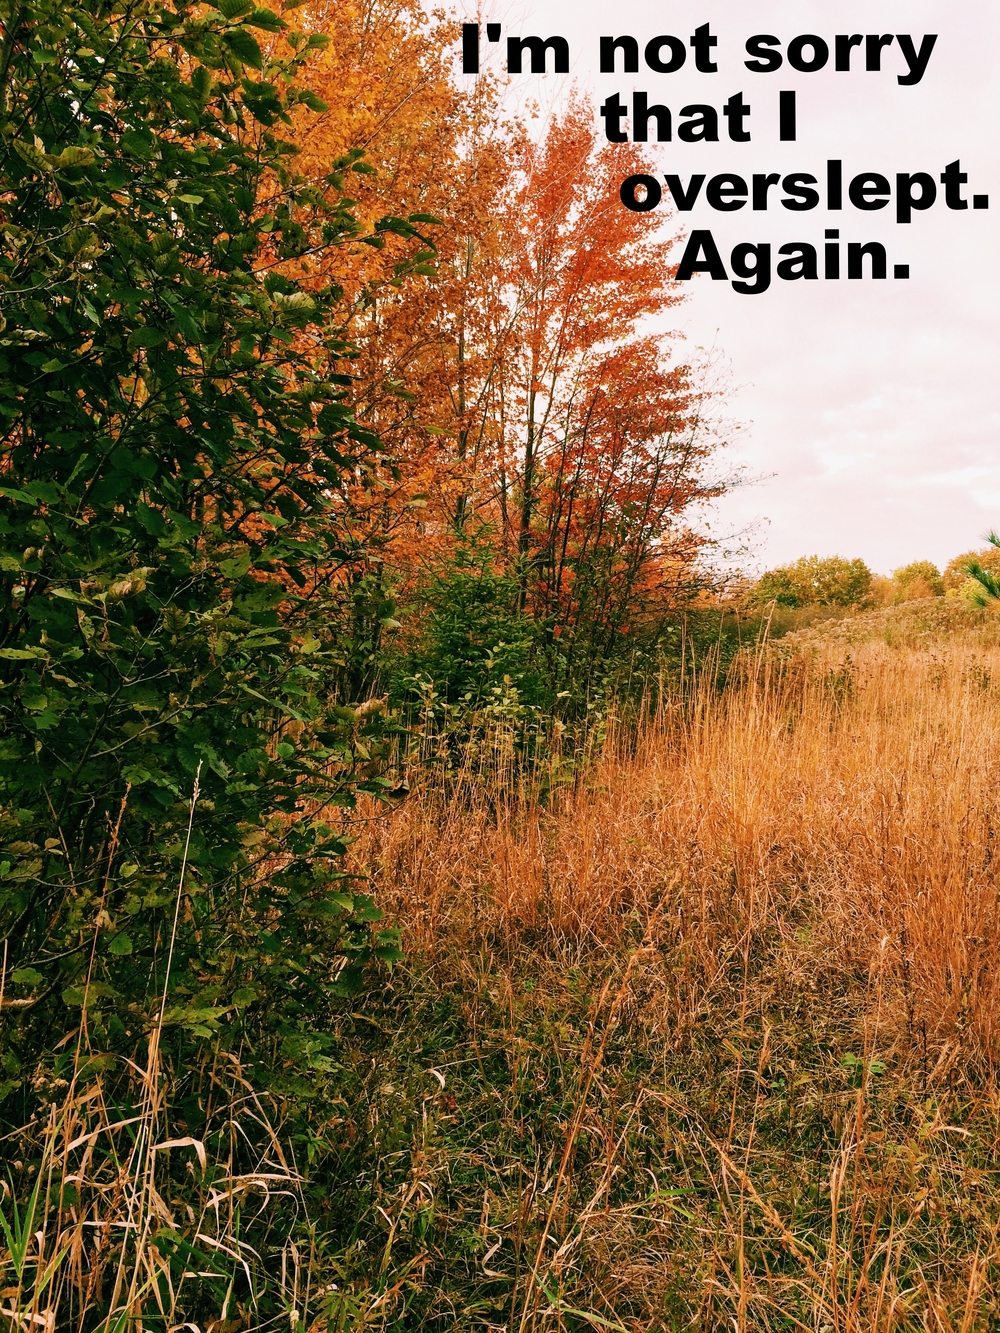 "Anonymous April 26 2016 Image of a field in autumn with golden tall grass and trees with warm-colored leaves beside it and in the distance. ""I'm not sorry that I overslept. Again"" is overlaid."